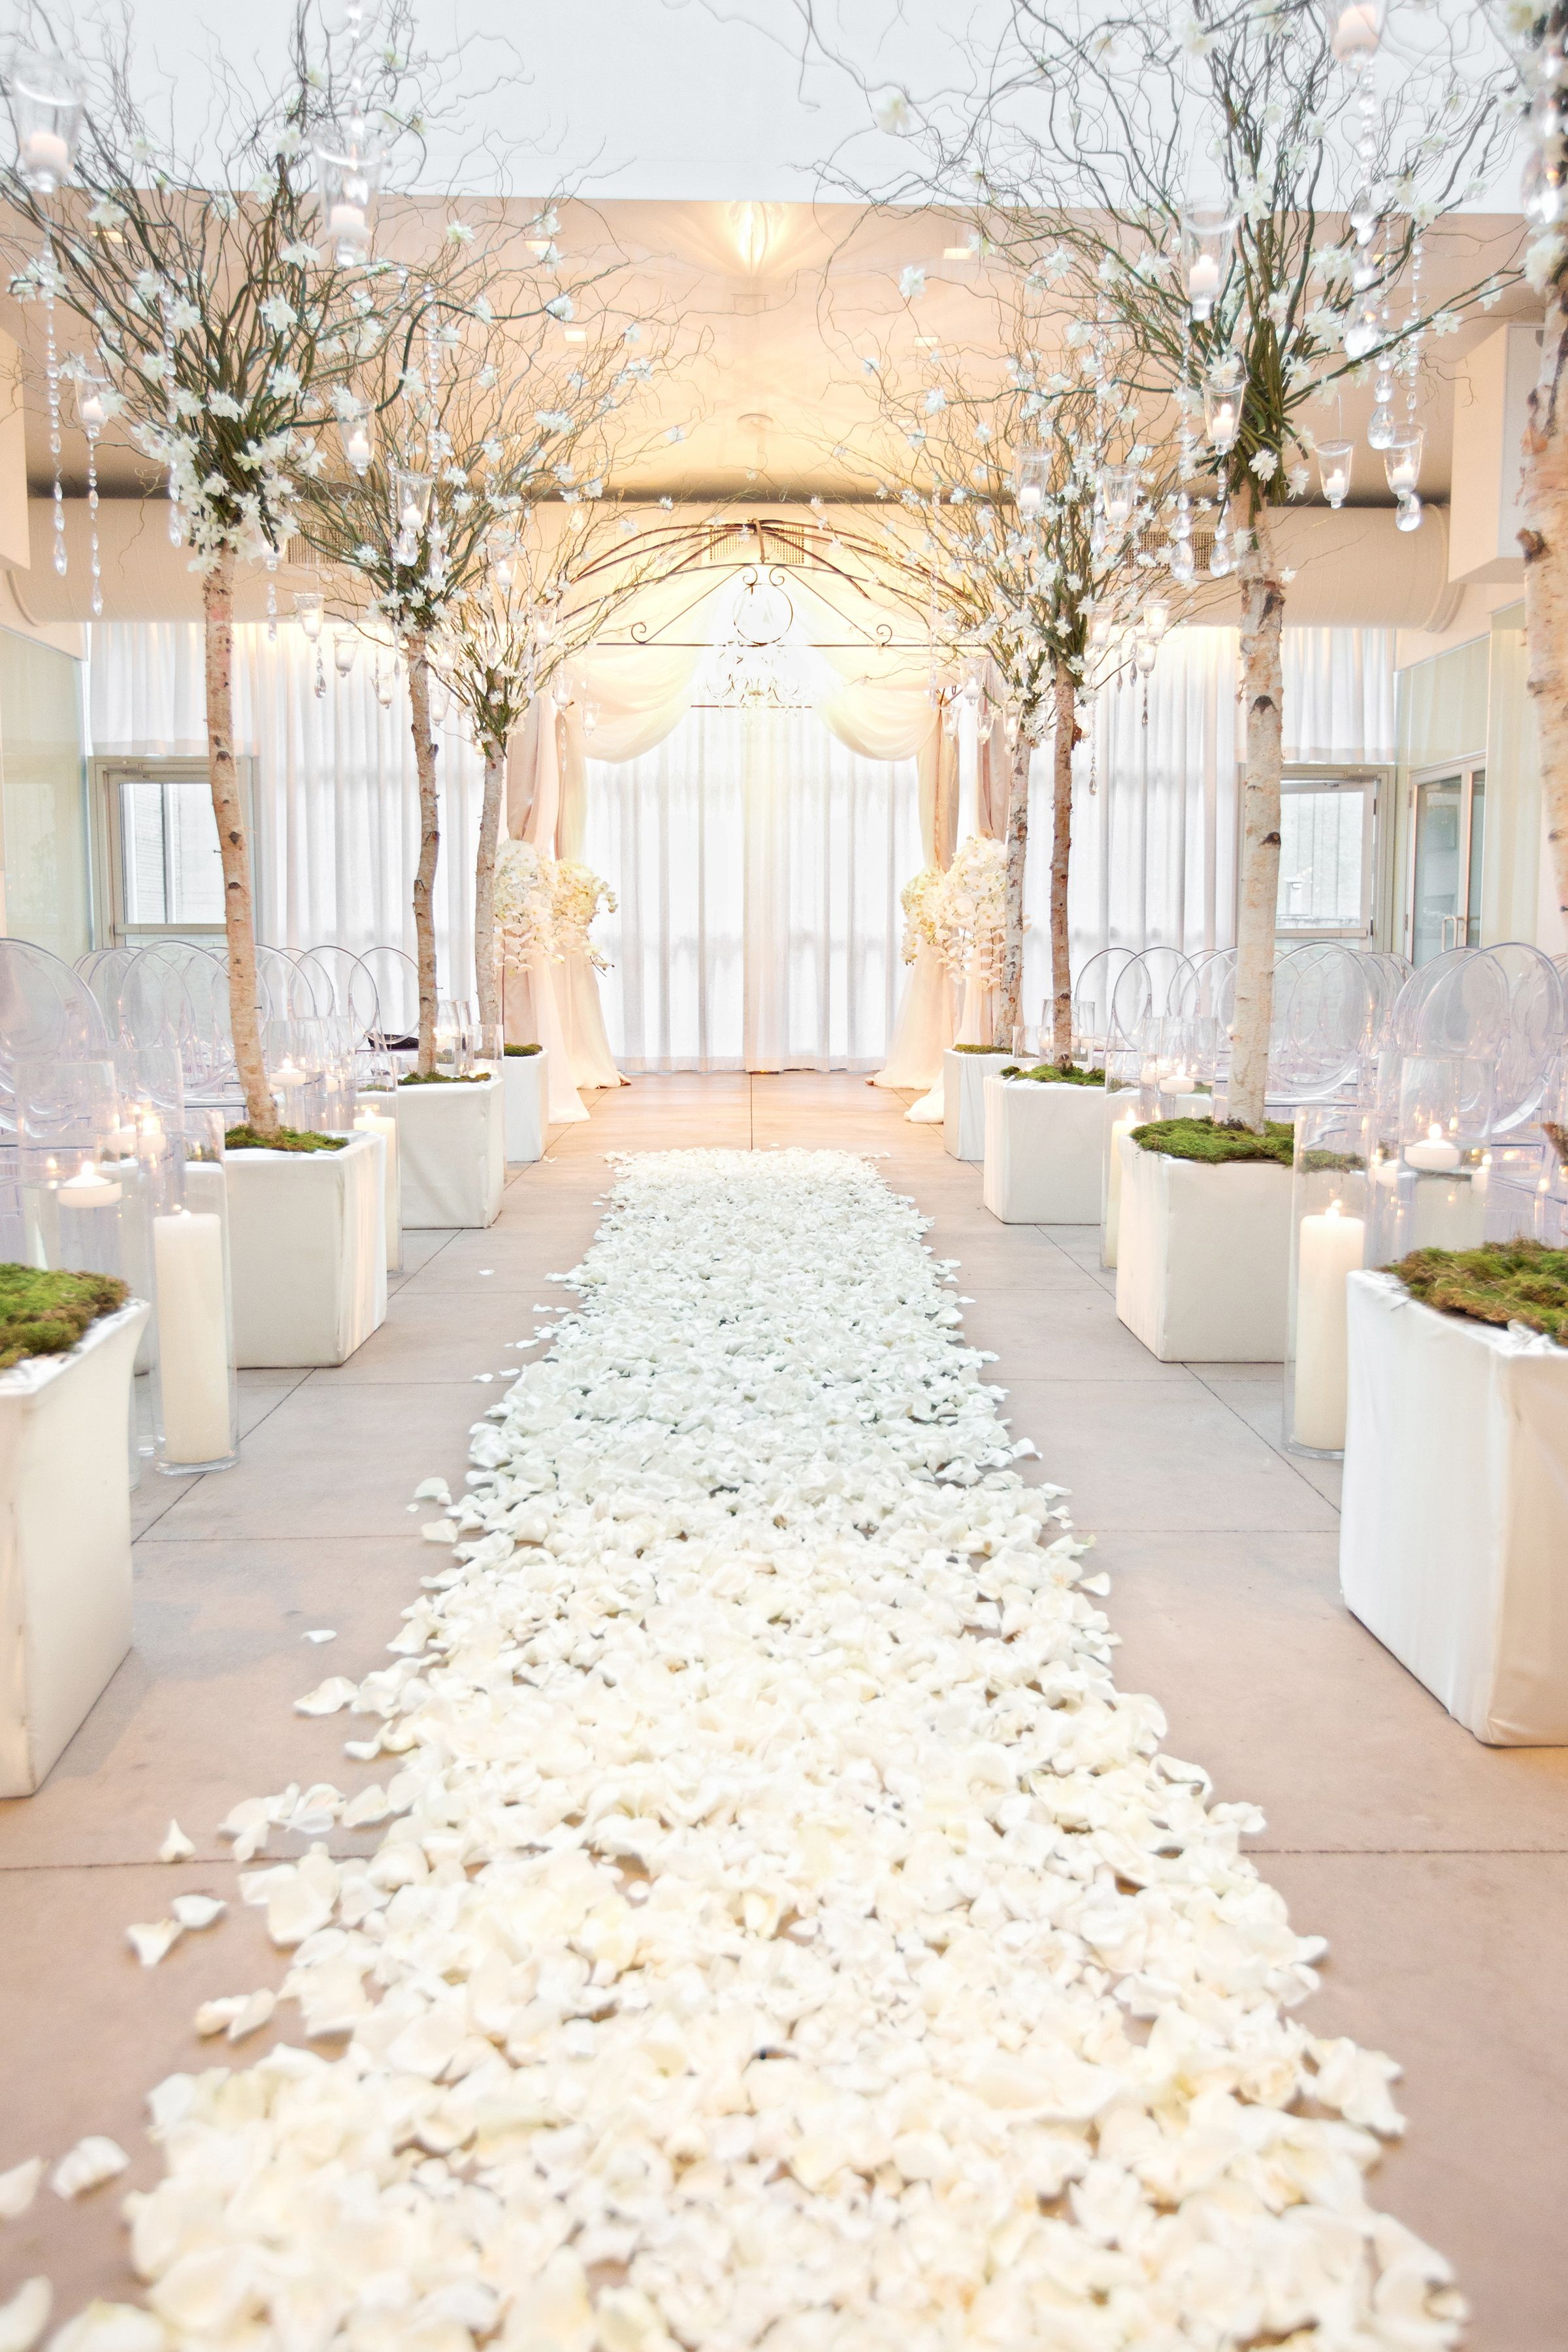 Winter White Wedding Inspiration Dfw Events White Winter Wedding White Wedding Decorations Wedding Themes Winter